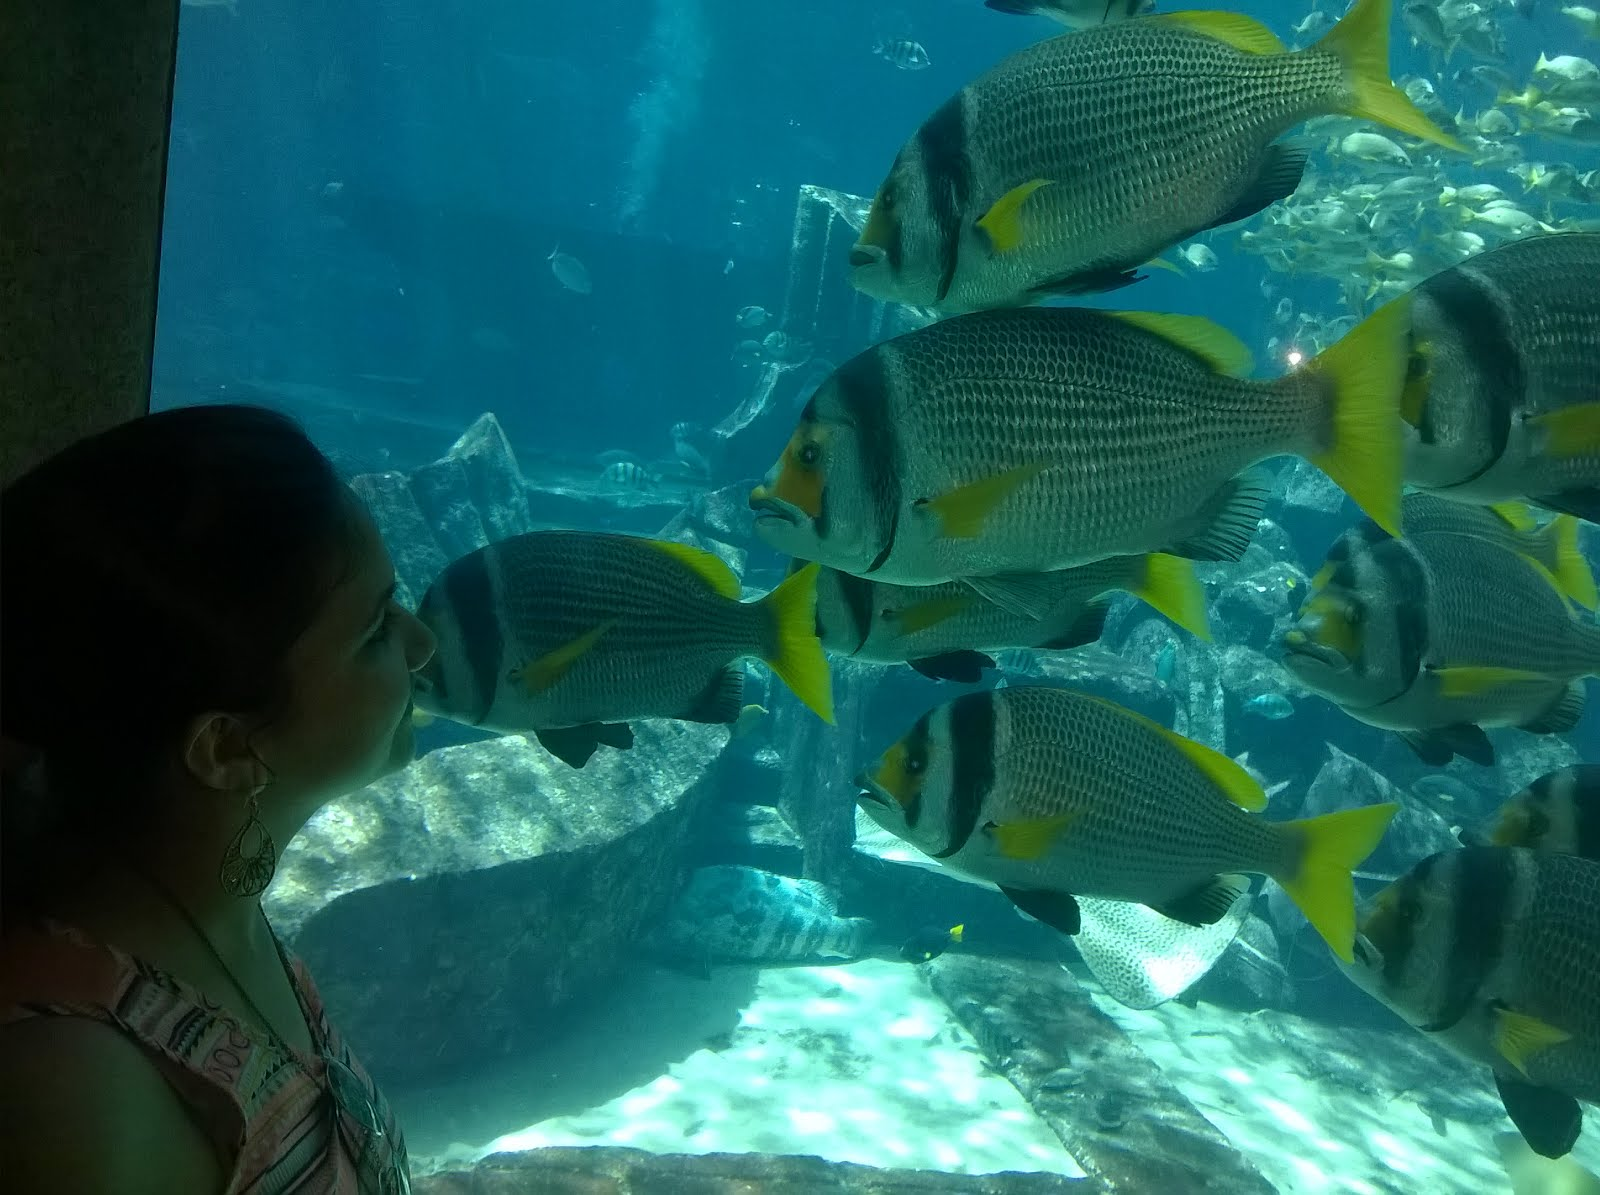 Fish aquarium in umm al quwain - Totally Worth The Dirhams This Aquarium Is A Must Visit The Display Is Huge The Theme Being The Mythical Lost City Of Atlantis